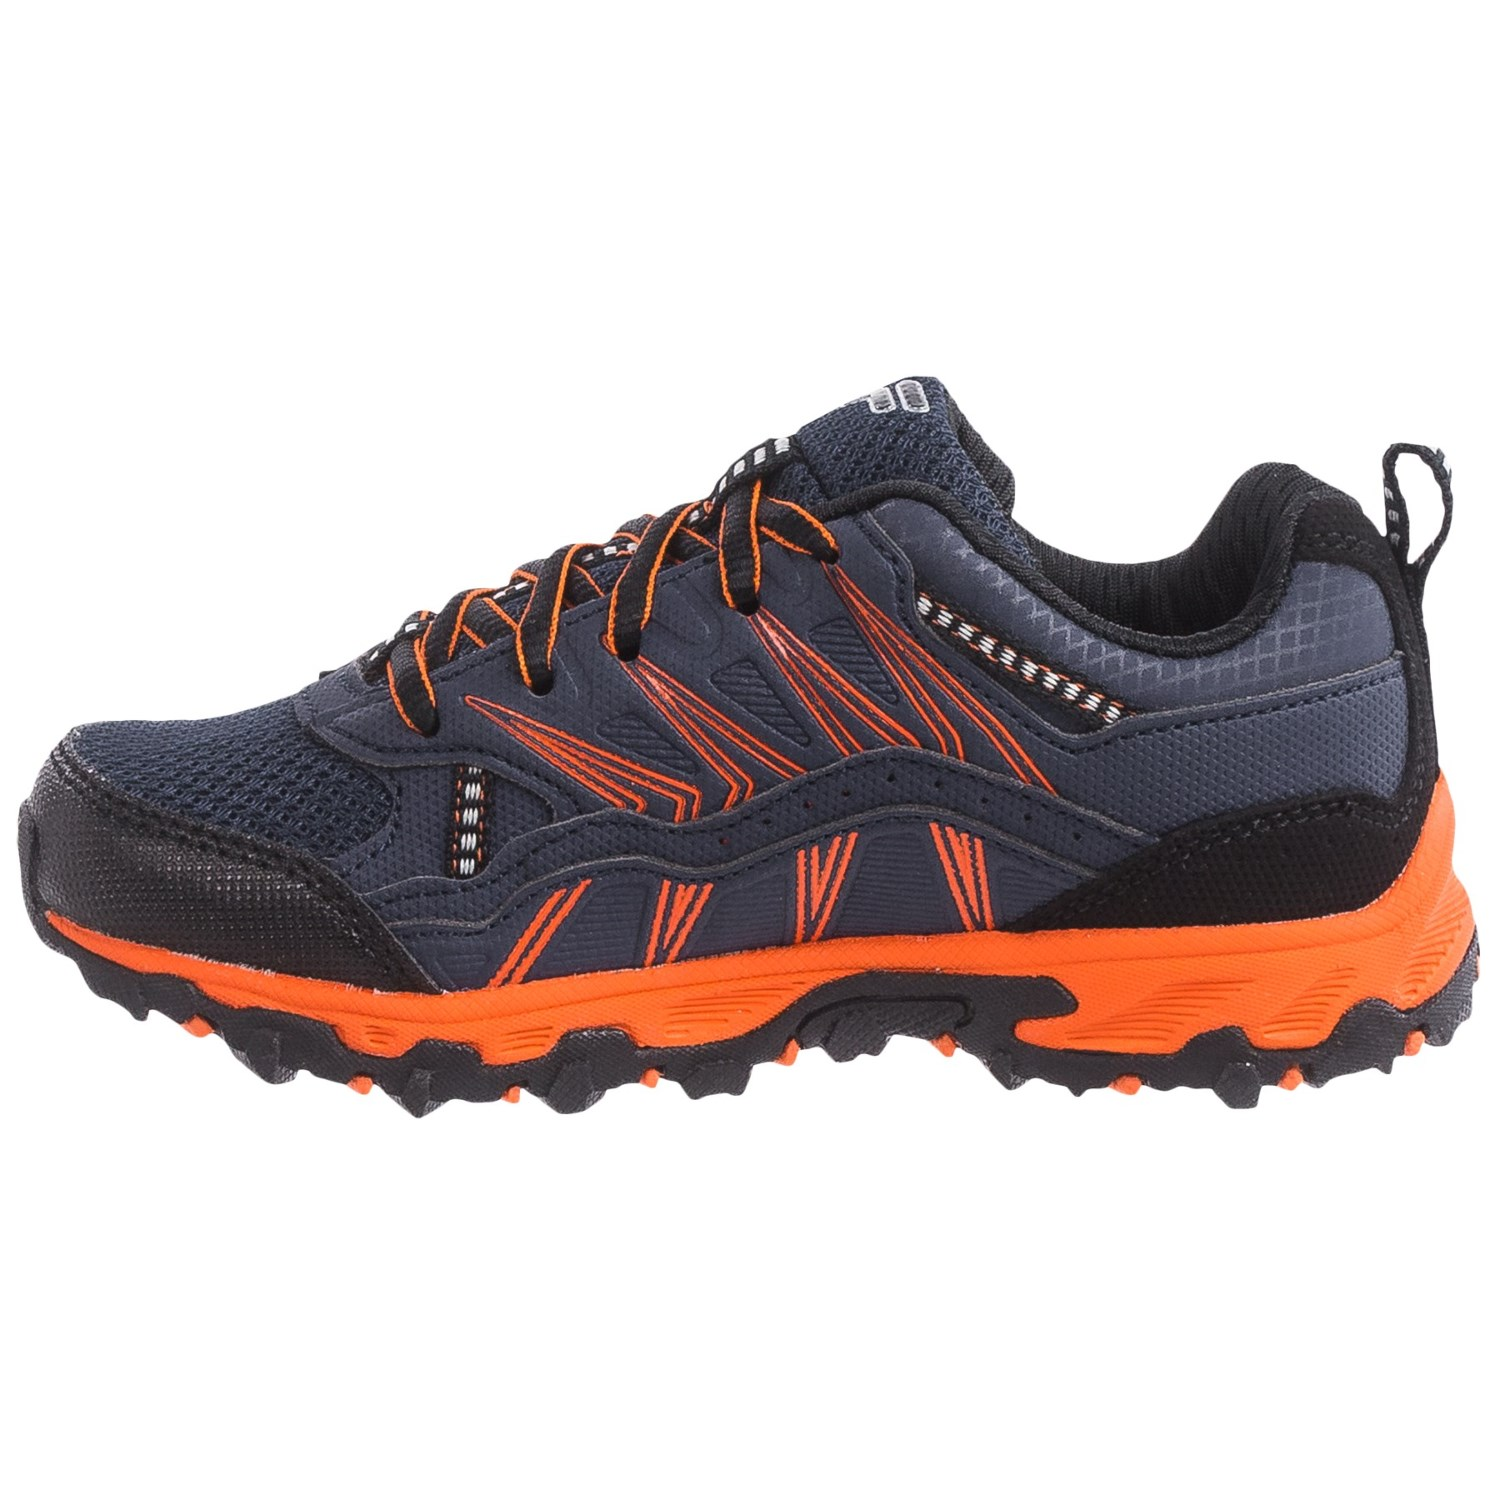 Fila At Peake 16 Hiking Shoes For Little And Big Boys